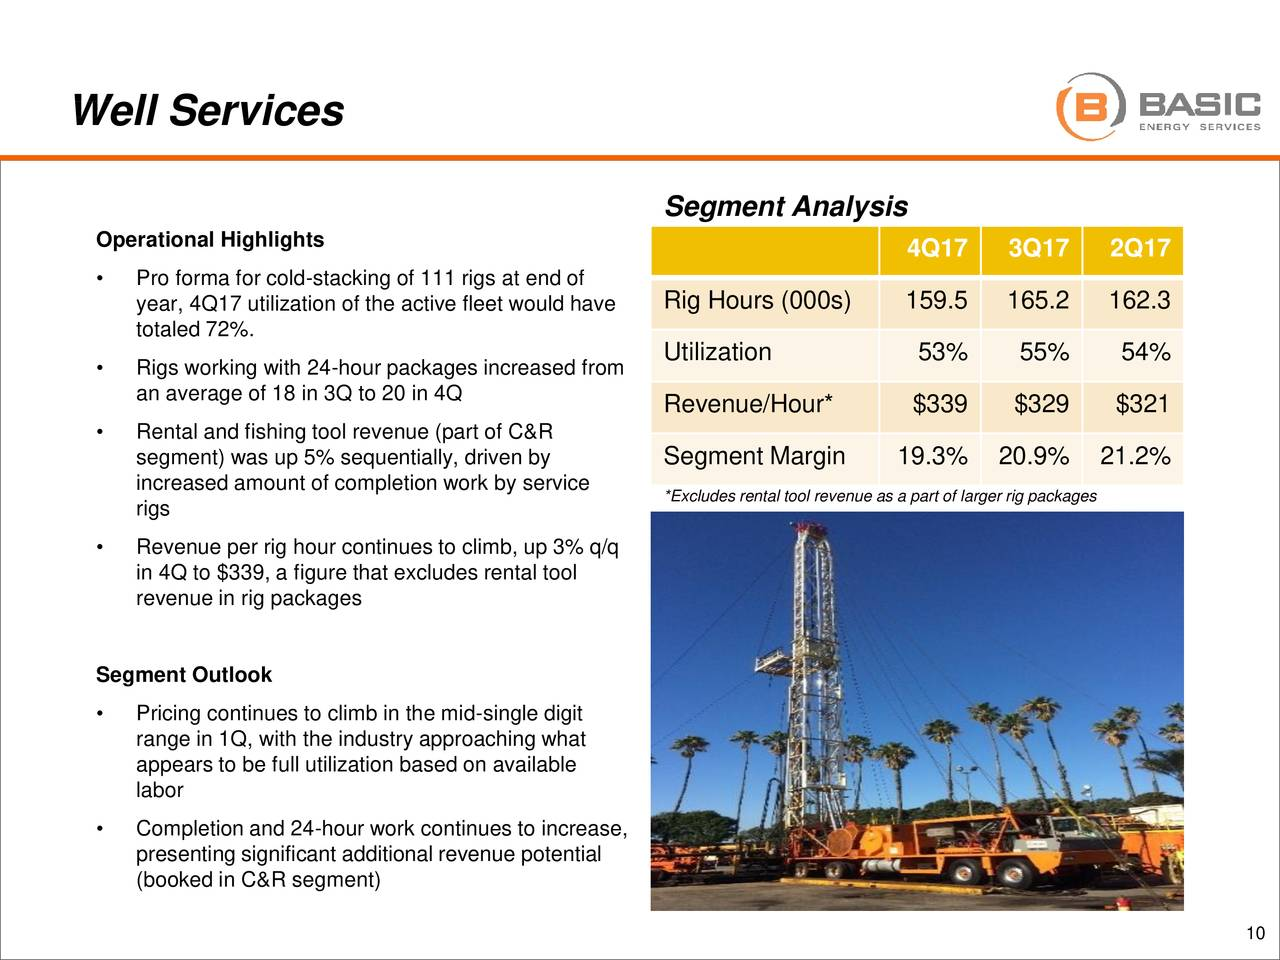 Basic Energy Services Inc 2017 Q4 Results Earnings